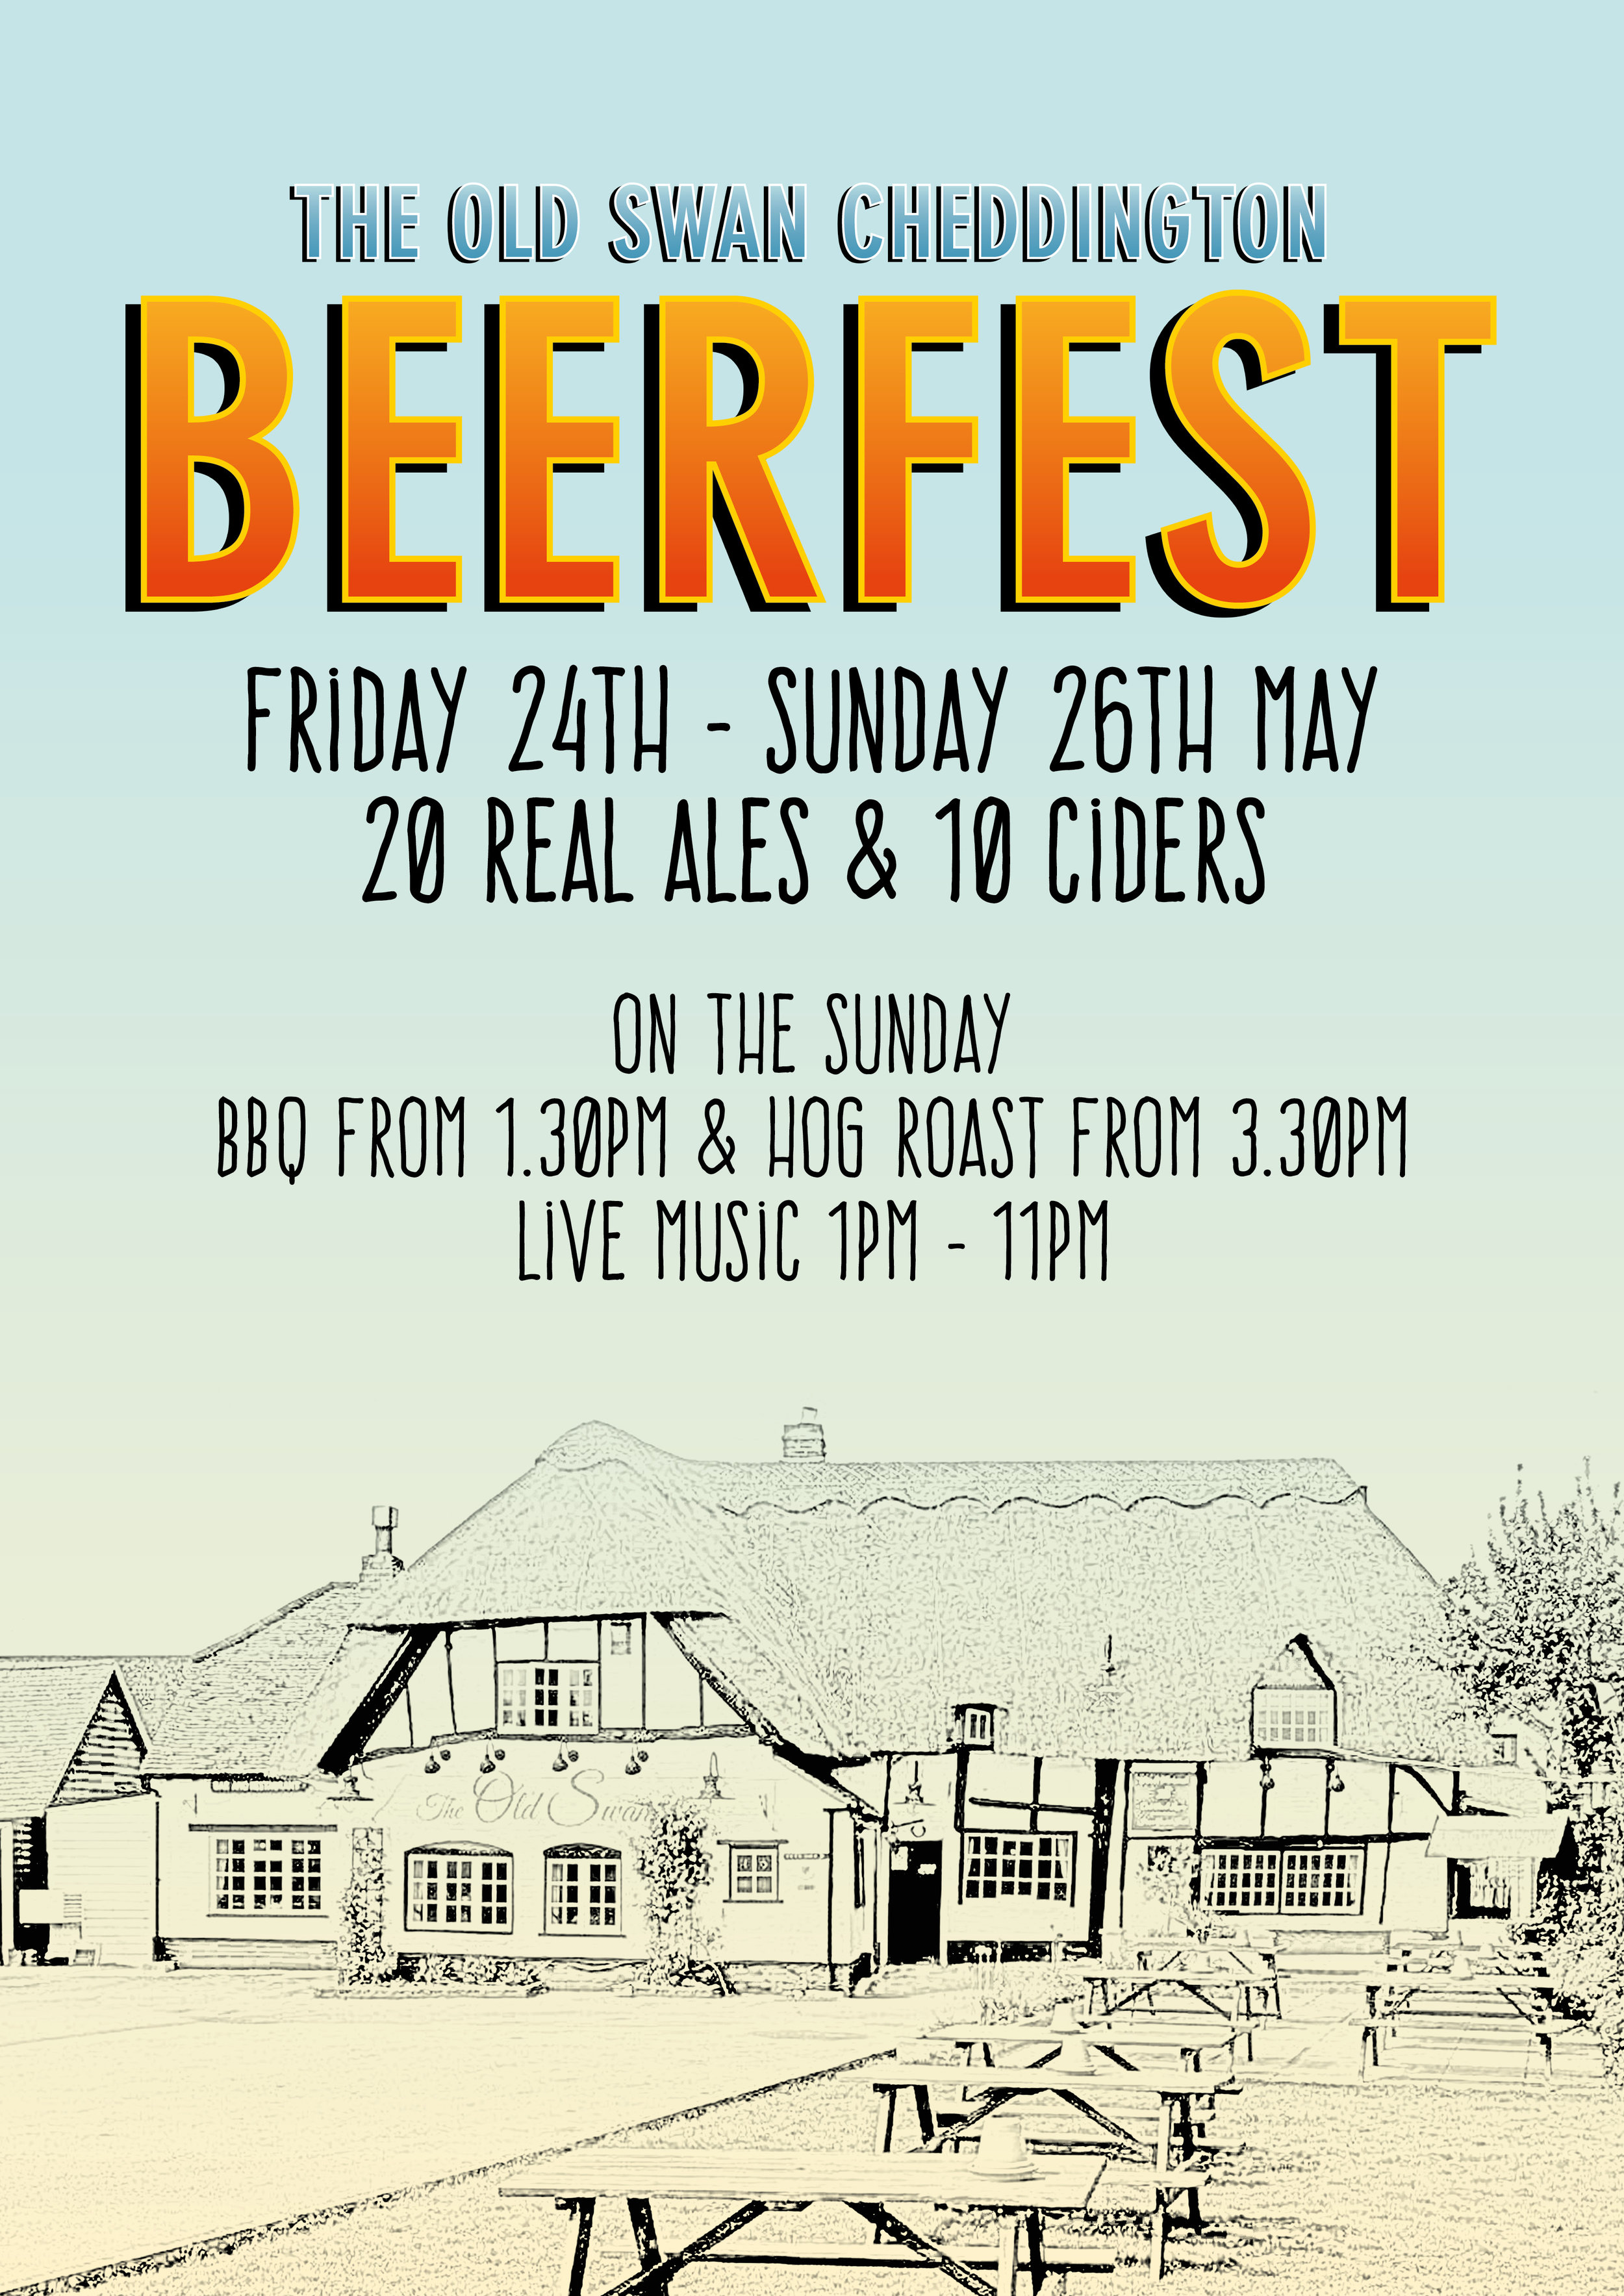 May_Beer_Festival_2019_A3_Poster_image.jpg